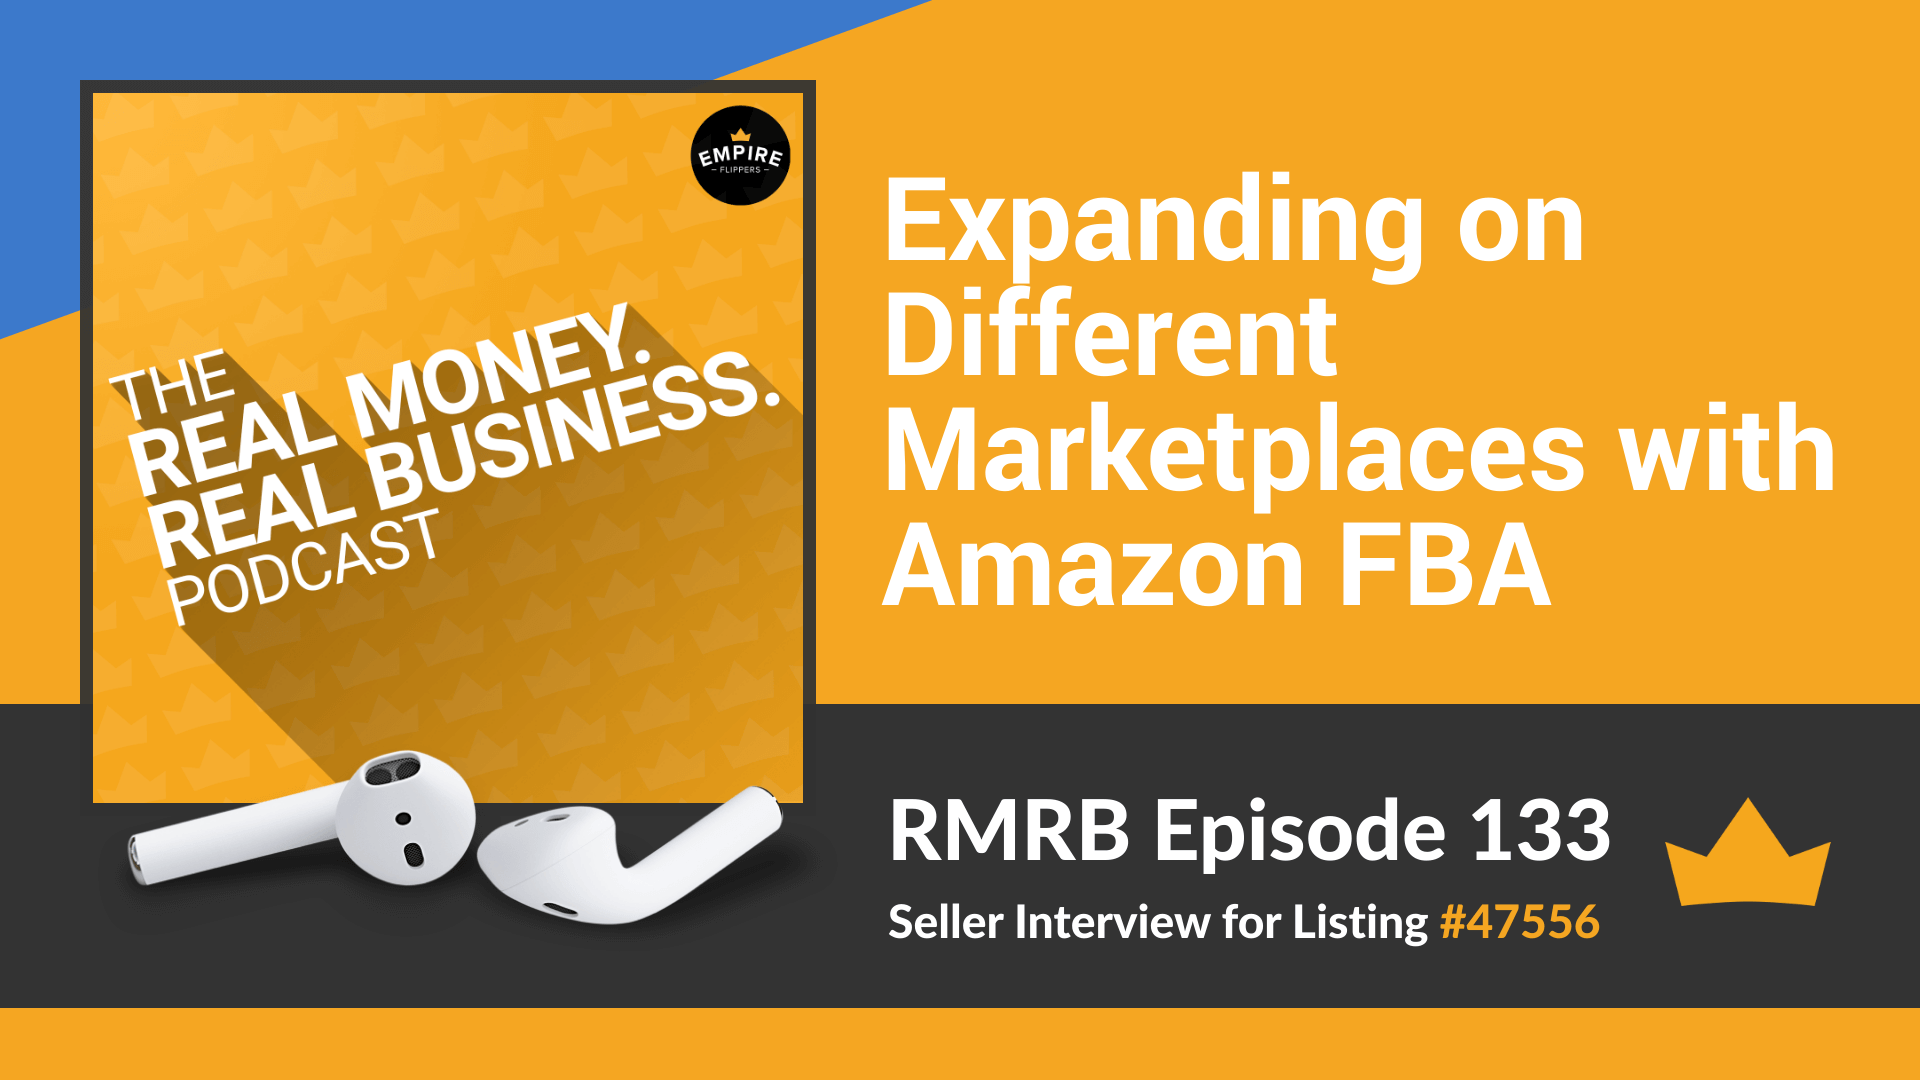 RMRB 133: Expanding on Different Marketplaces with Amazon FBA